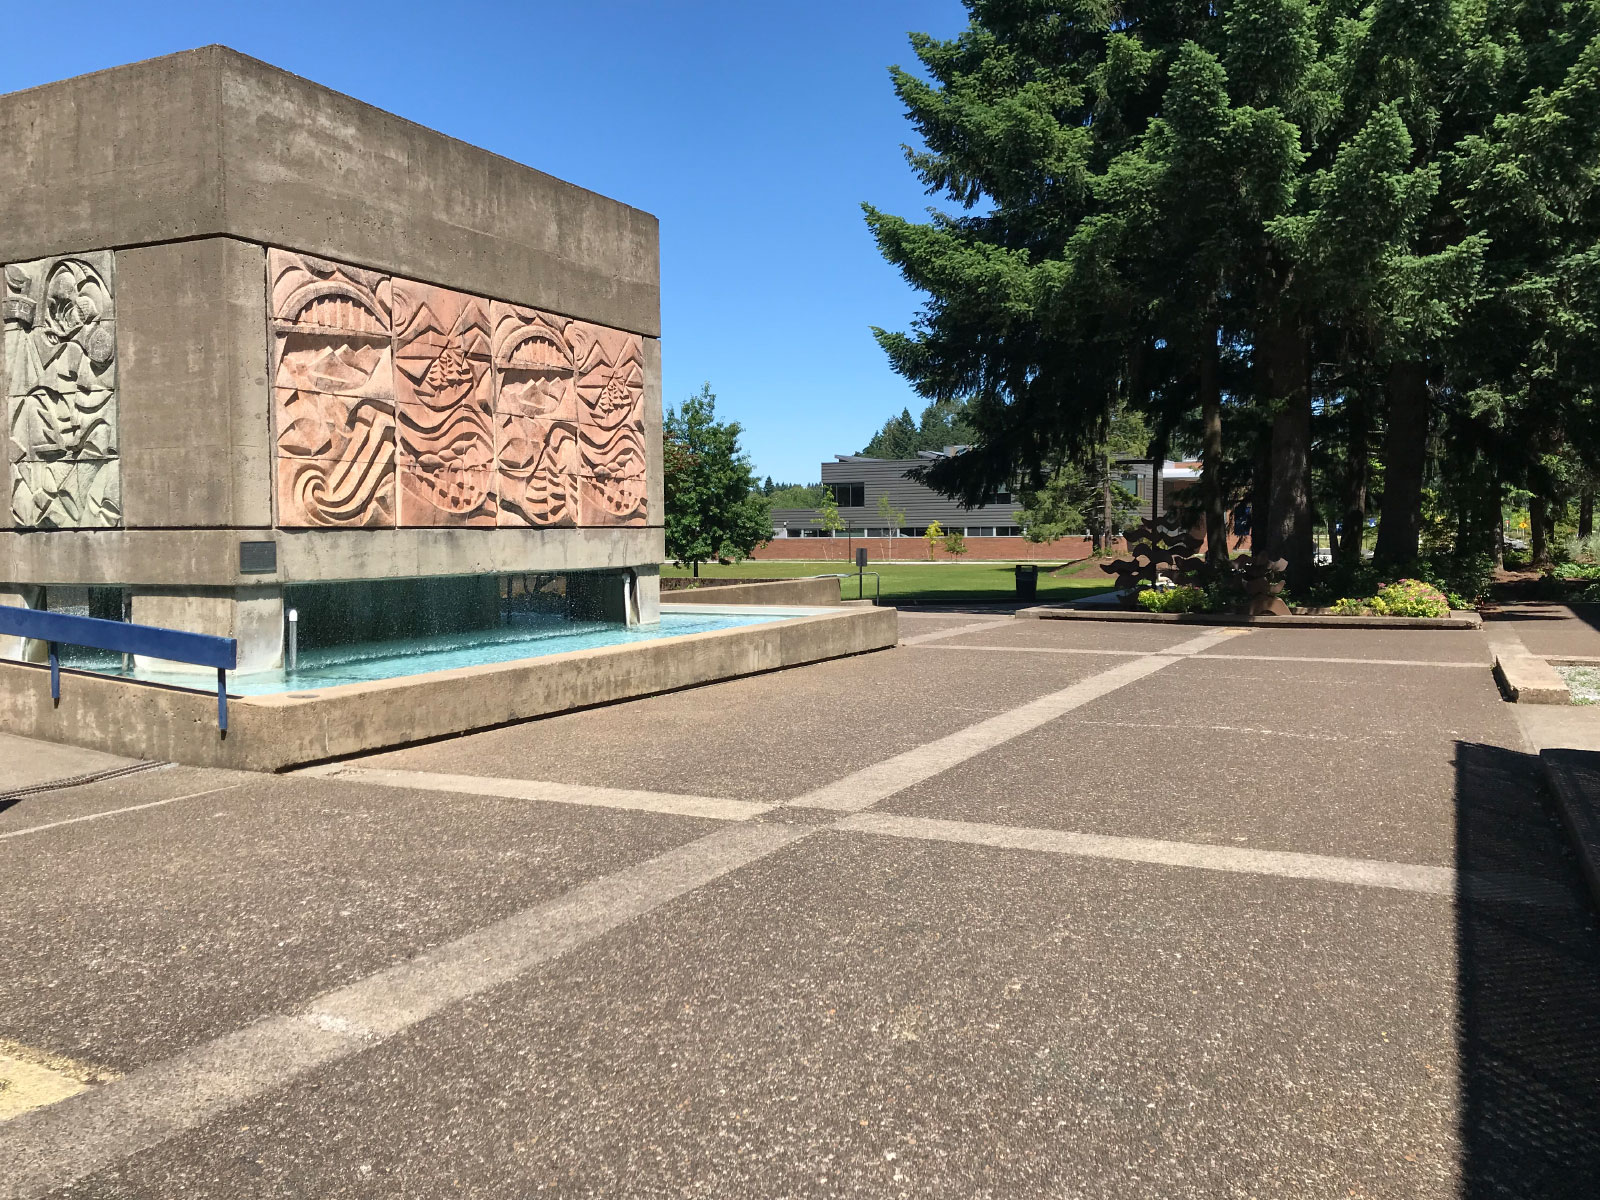 The stone structure and fountain in the quad next to Barlow Hall on the Oregon City campus